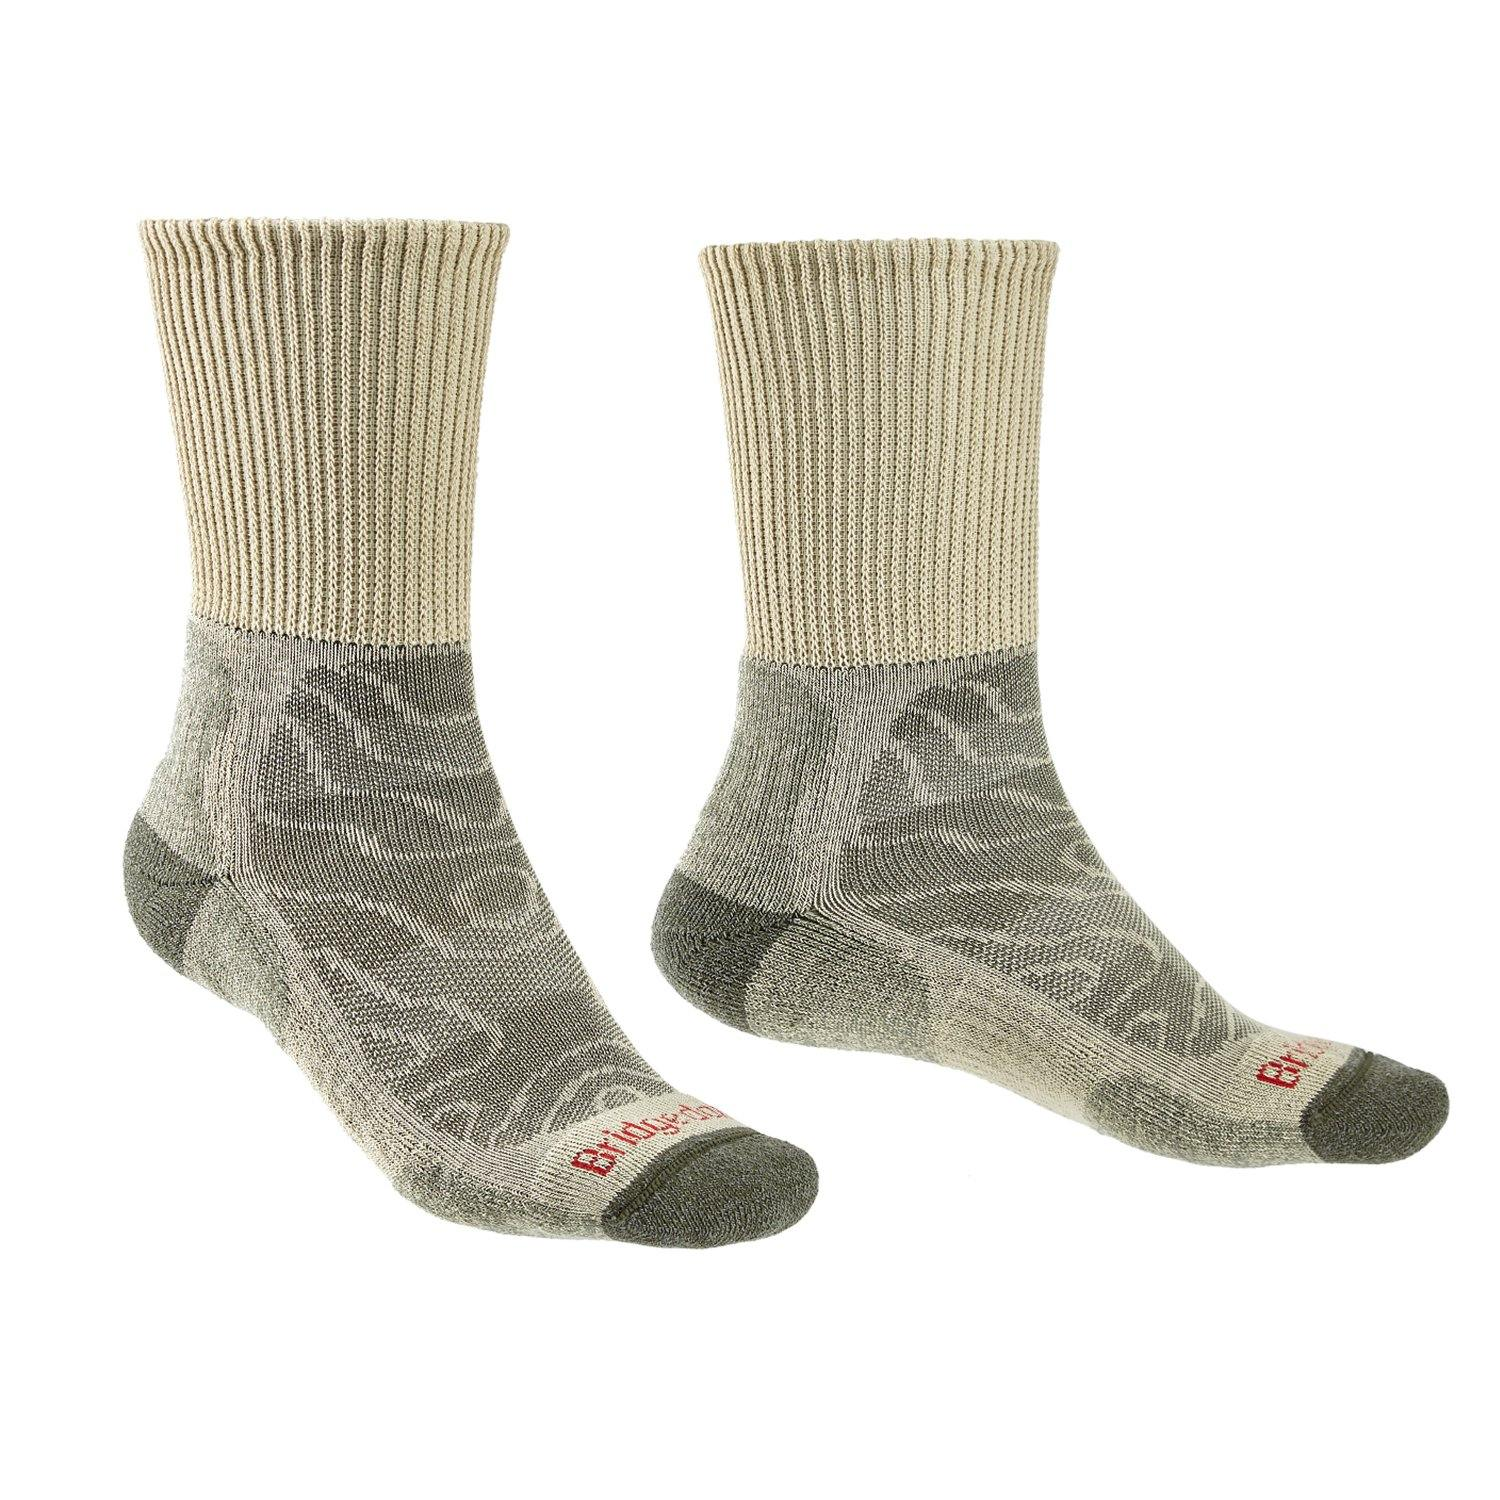 Bridgedale MERINO HIKE Comfort Socks (Lightweight Natural)